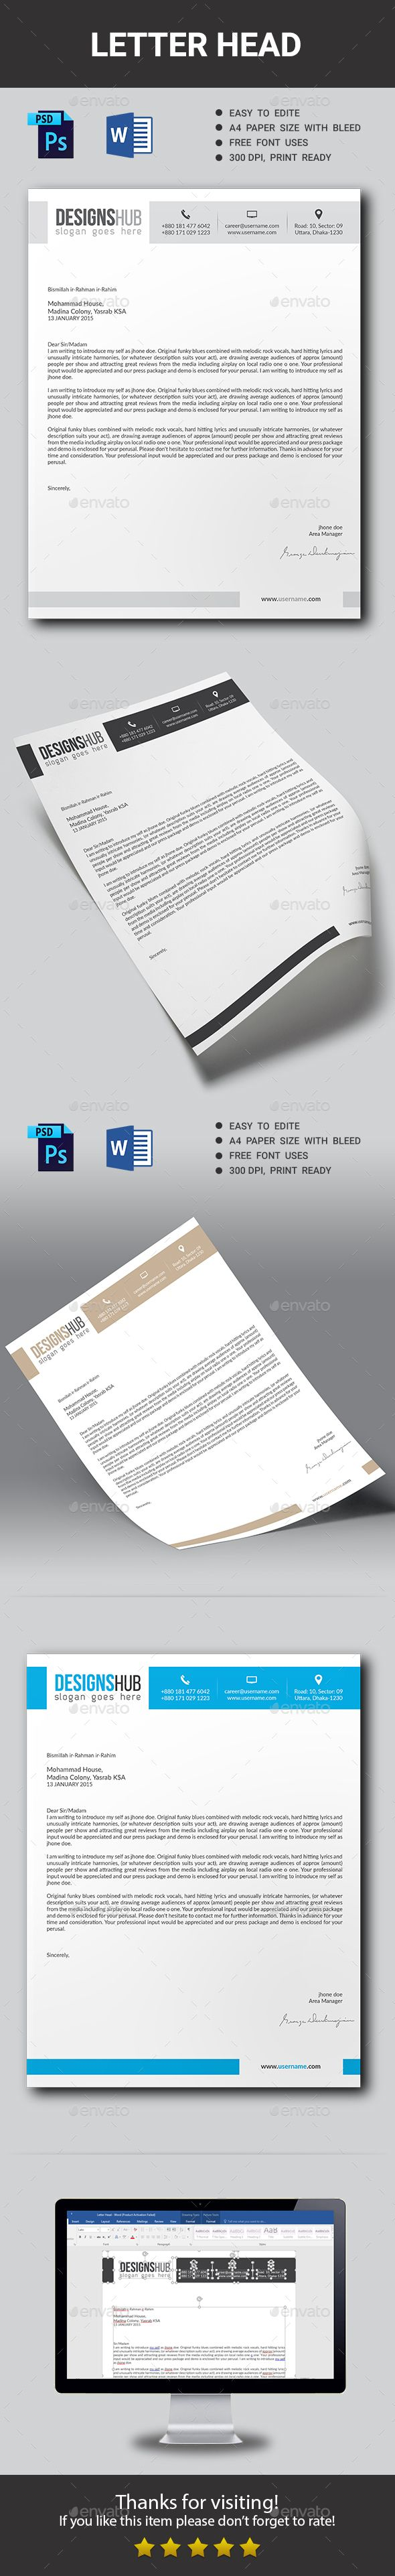 #Corporate #Letter Head - Stationery Print #Templates Download here:  https://graphicriver.net/item/corporate-letter-head/14715283?ref=alena994